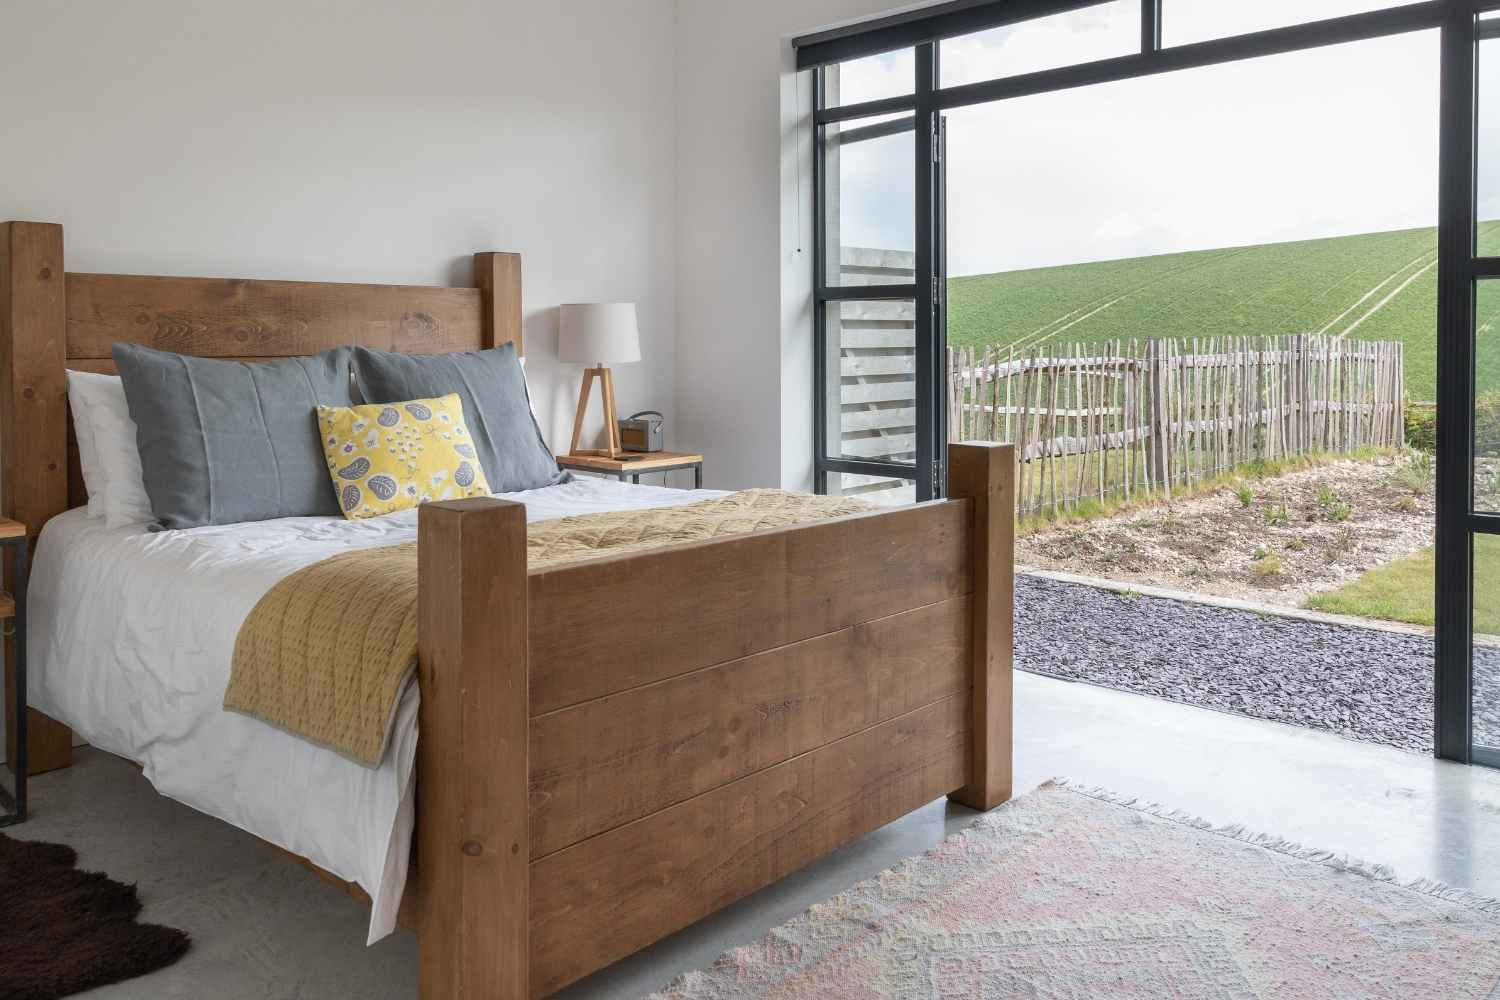 Kingsized Bedroom 1, with stunning views